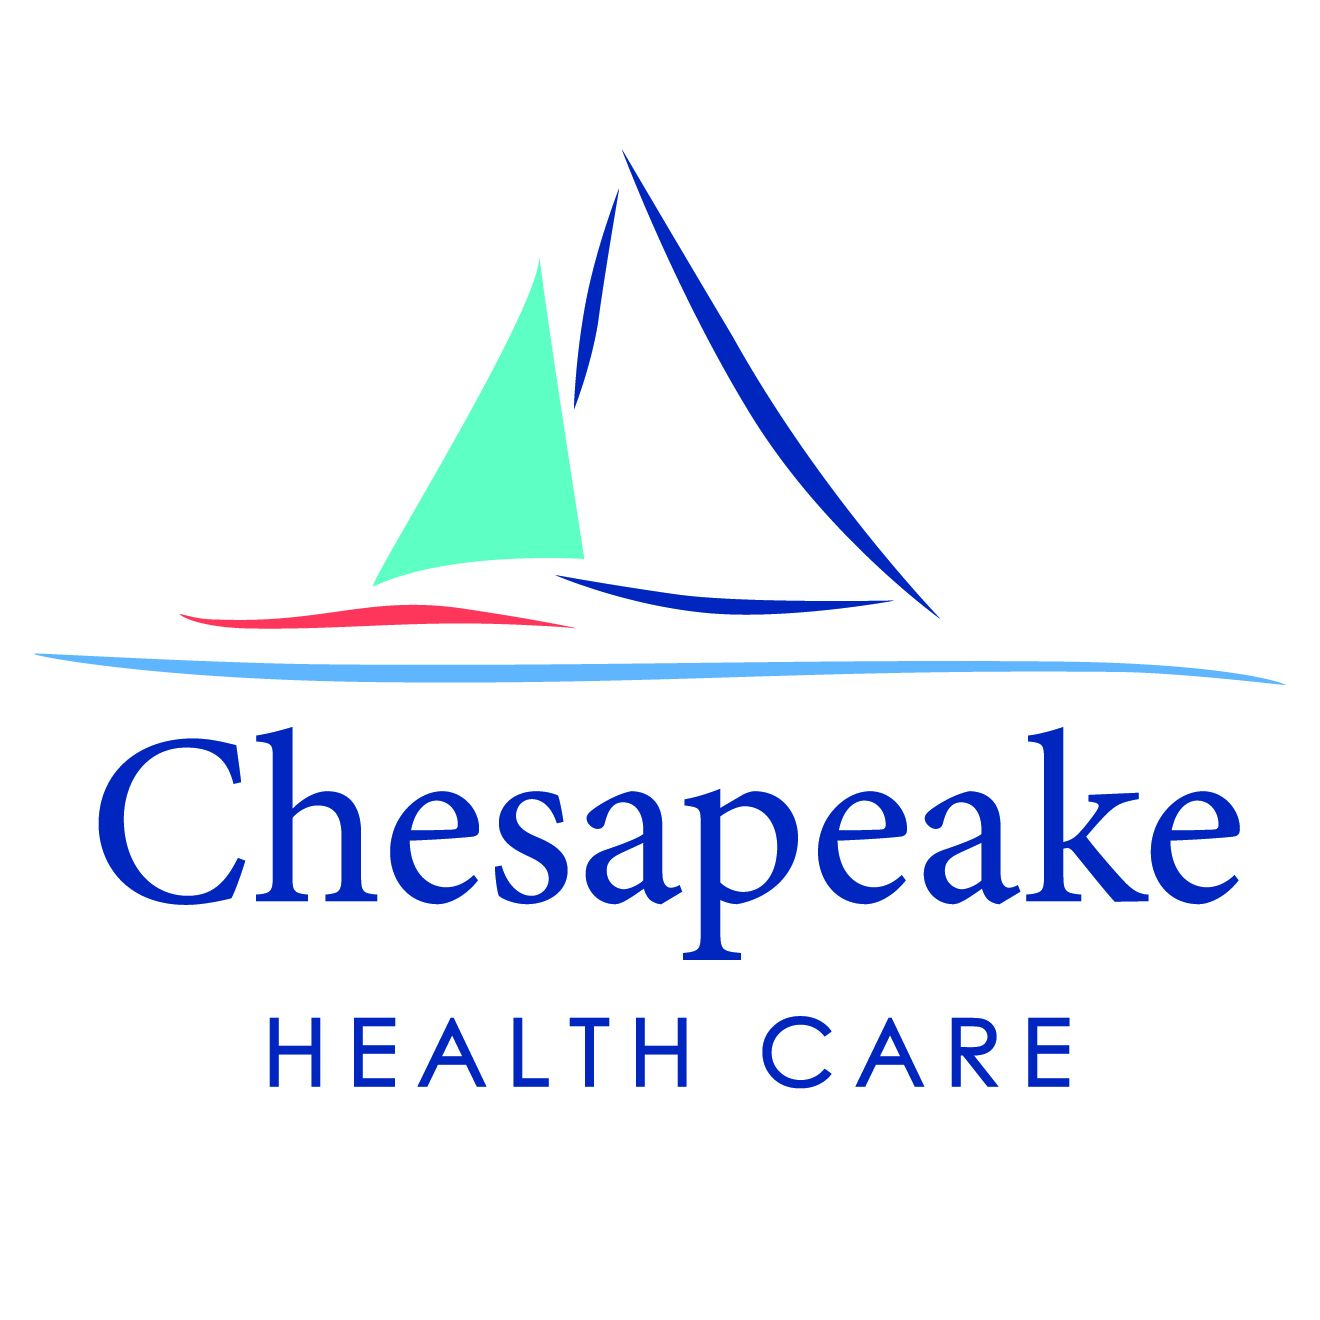 ChesapeakeHealthCare Logo